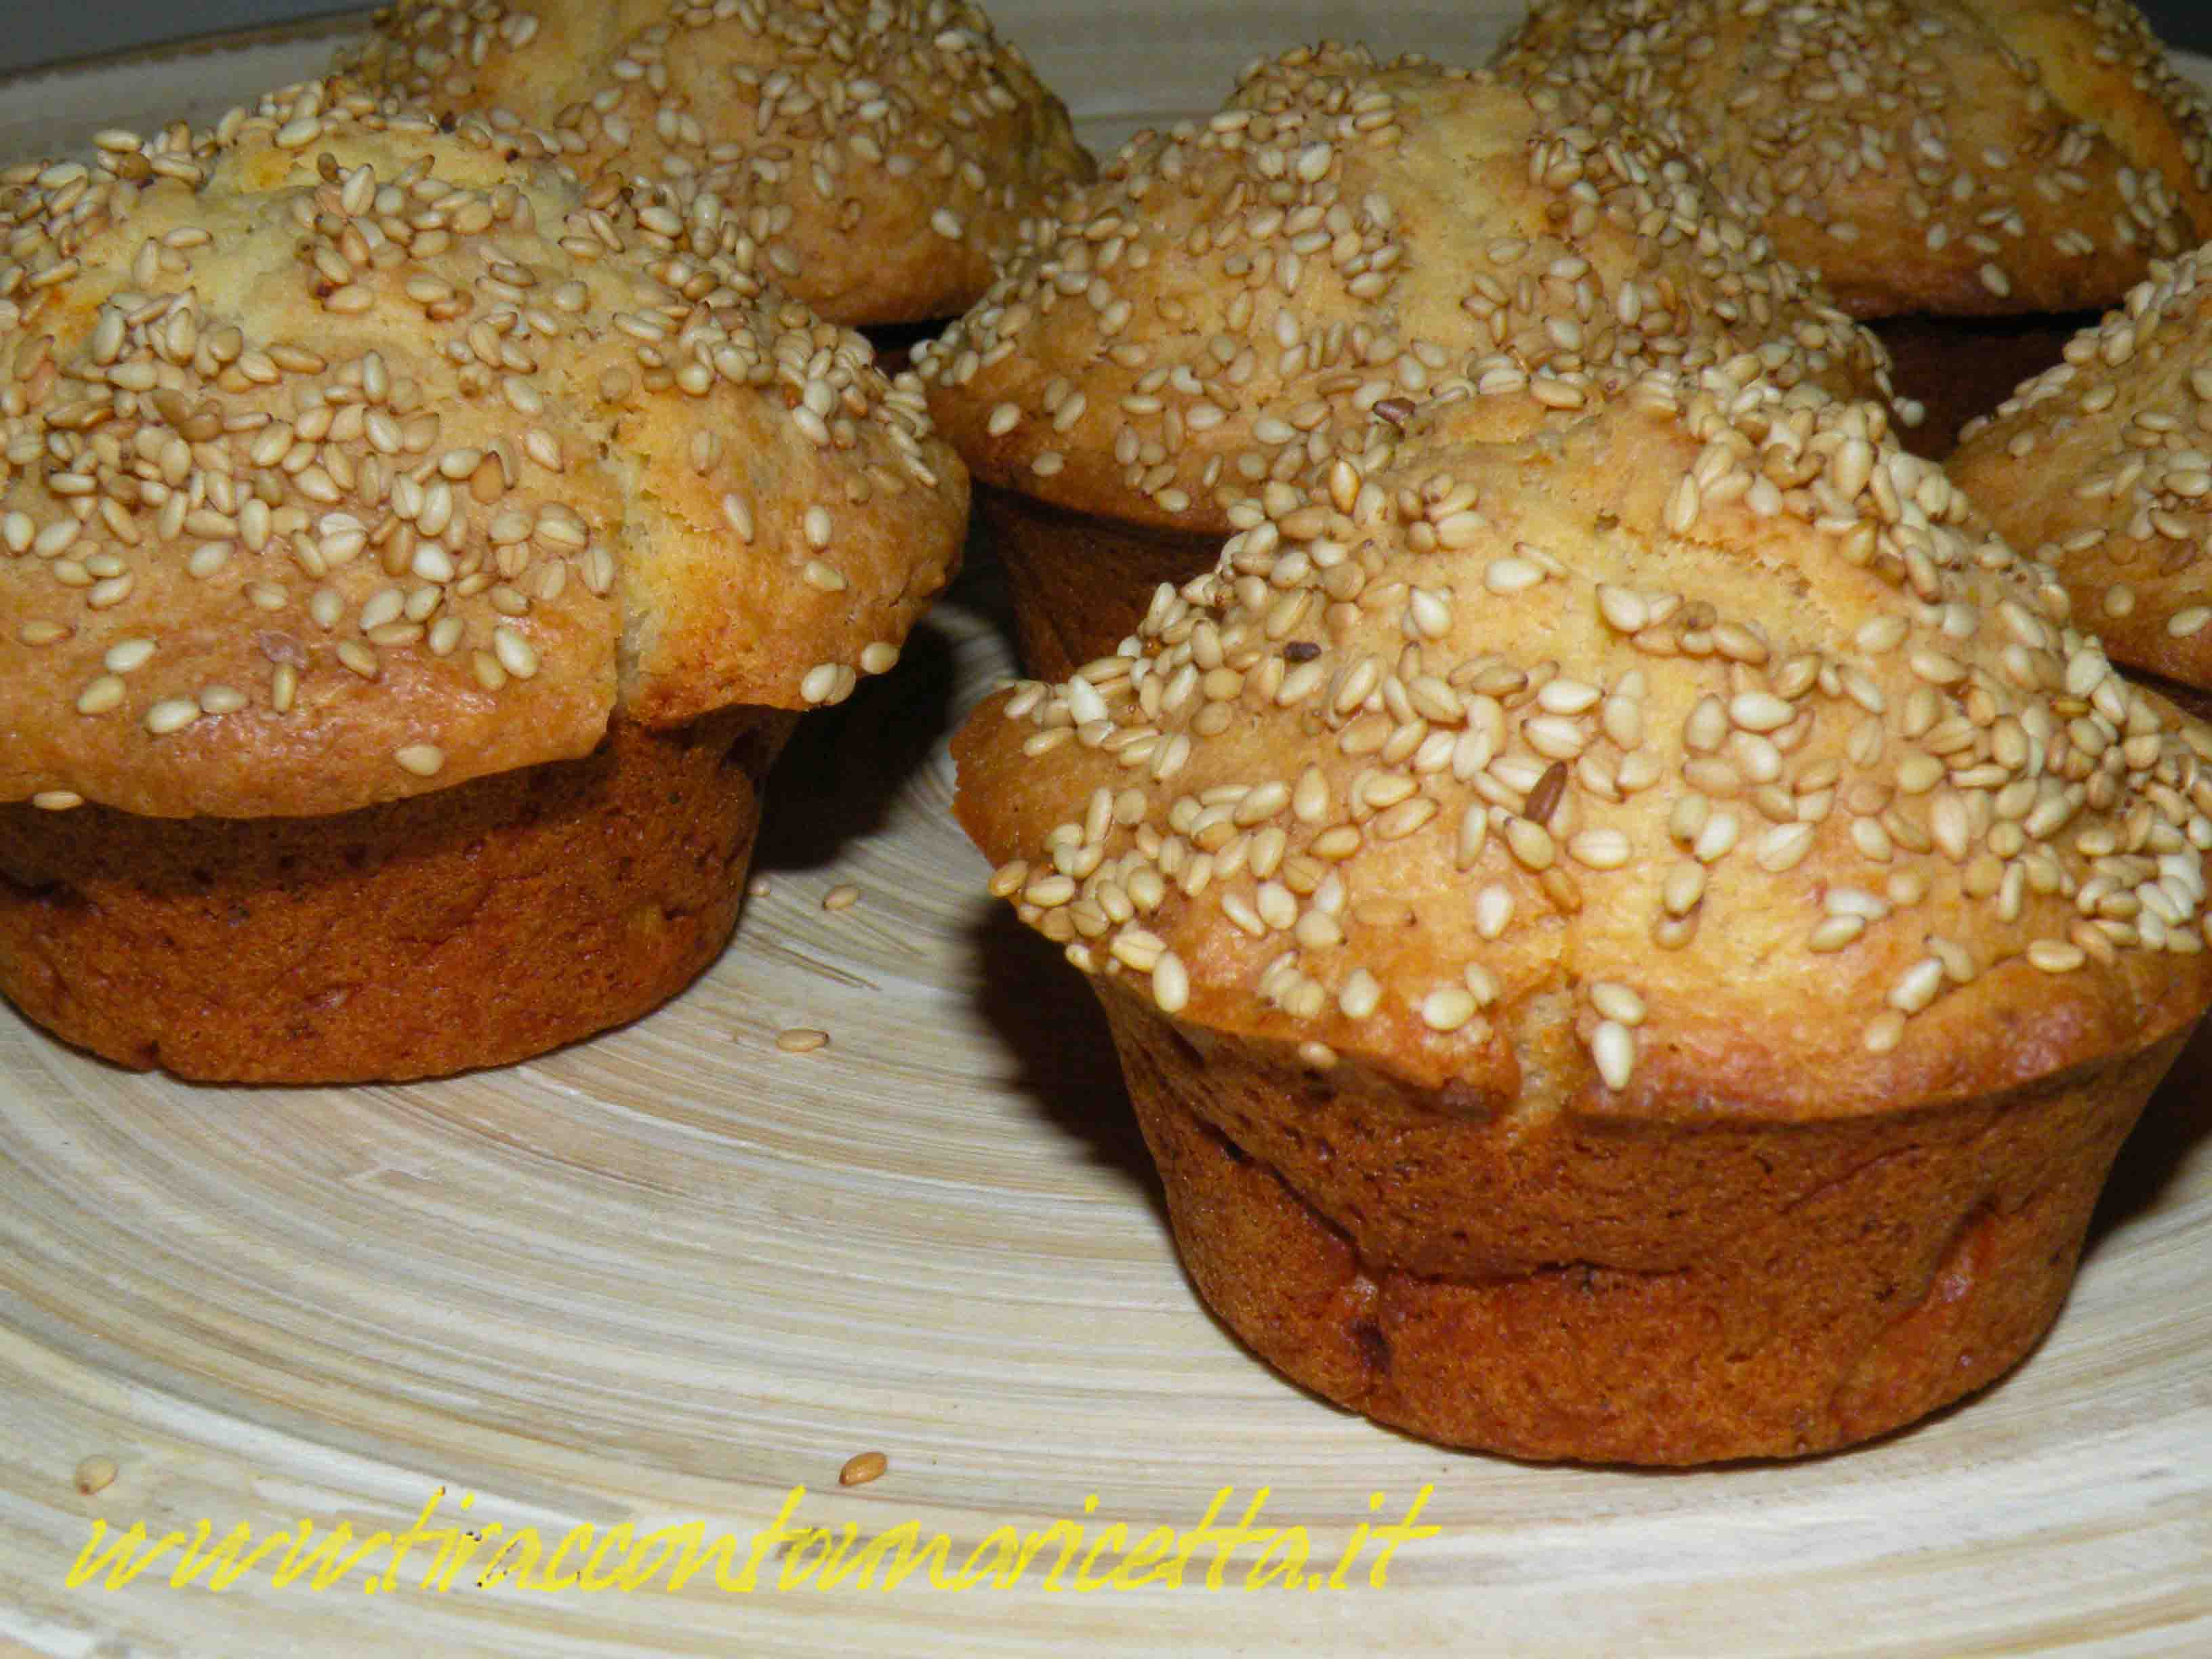 Muffin with ricotta cheese and sesame seeds